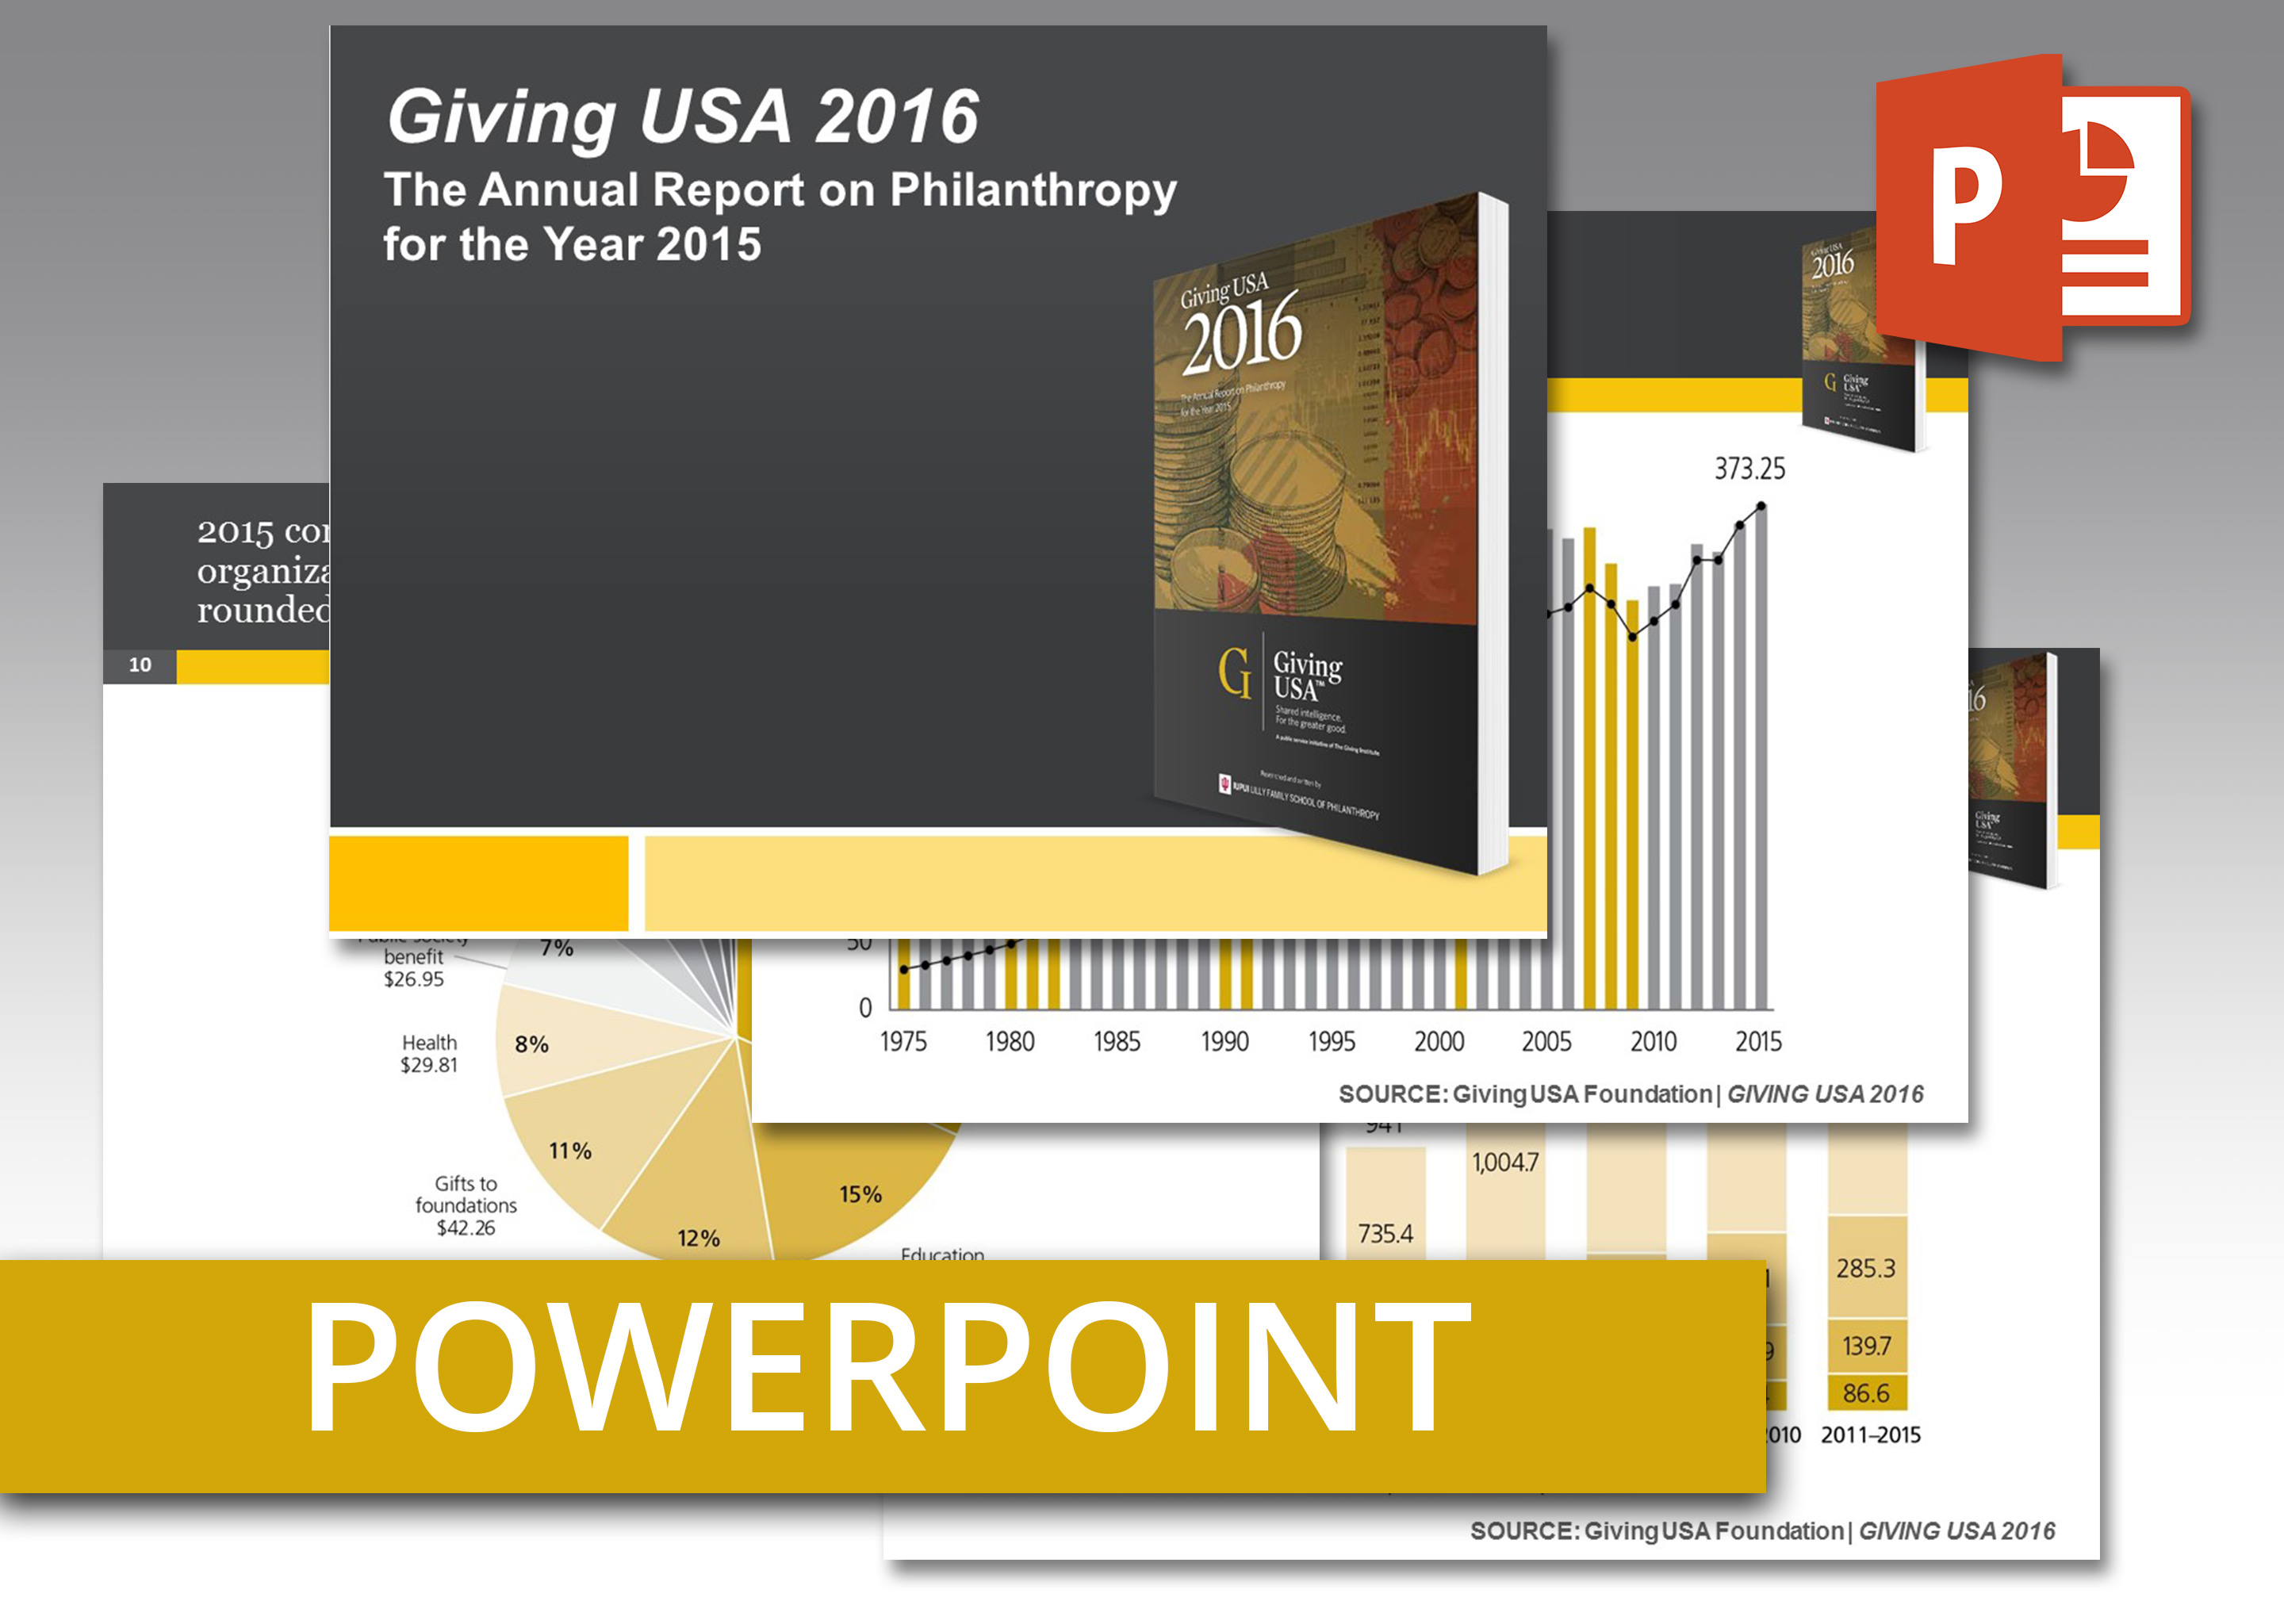 Coolmathgamesus  Ravishing Giving Usa  Powerpoint An Easytouse Presentation Of Report  With Interesting Giving Usa  Powerpoint An Easytouse Presentation Of Report Findings Including Talking Points With Enchanting   Powerpoint Presentation Also Powerpoint Slide Notes In Addition Business Powerpoint Templates Free Download And Download Powerpoint For Mac Free As Well As Powerpoint Plugin Additionally Powerpoint Presentations Free From Givingusaorg With Coolmathgamesus  Interesting Giving Usa  Powerpoint An Easytouse Presentation Of Report  With Enchanting Giving Usa  Powerpoint An Easytouse Presentation Of Report Findings Including Talking Points And Ravishing   Powerpoint Presentation Also Powerpoint Slide Notes In Addition Business Powerpoint Templates Free Download From Givingusaorg